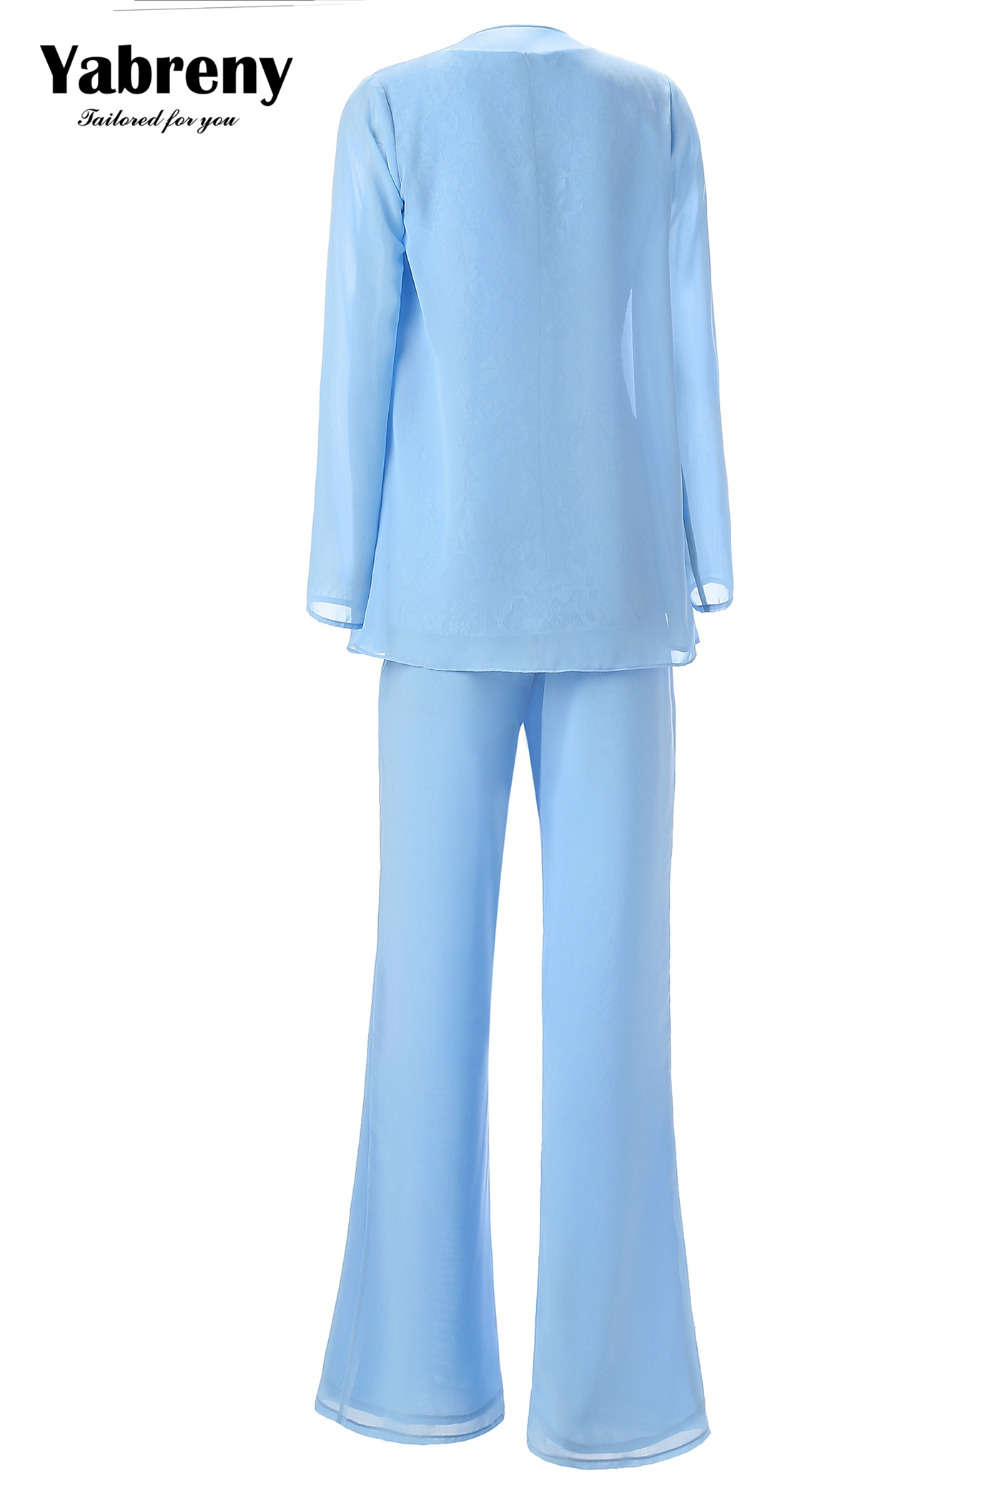 Yabreny Elegant Mother of the Bride Pants suit Sky blue Outfit for Wedding Party MT001704-1